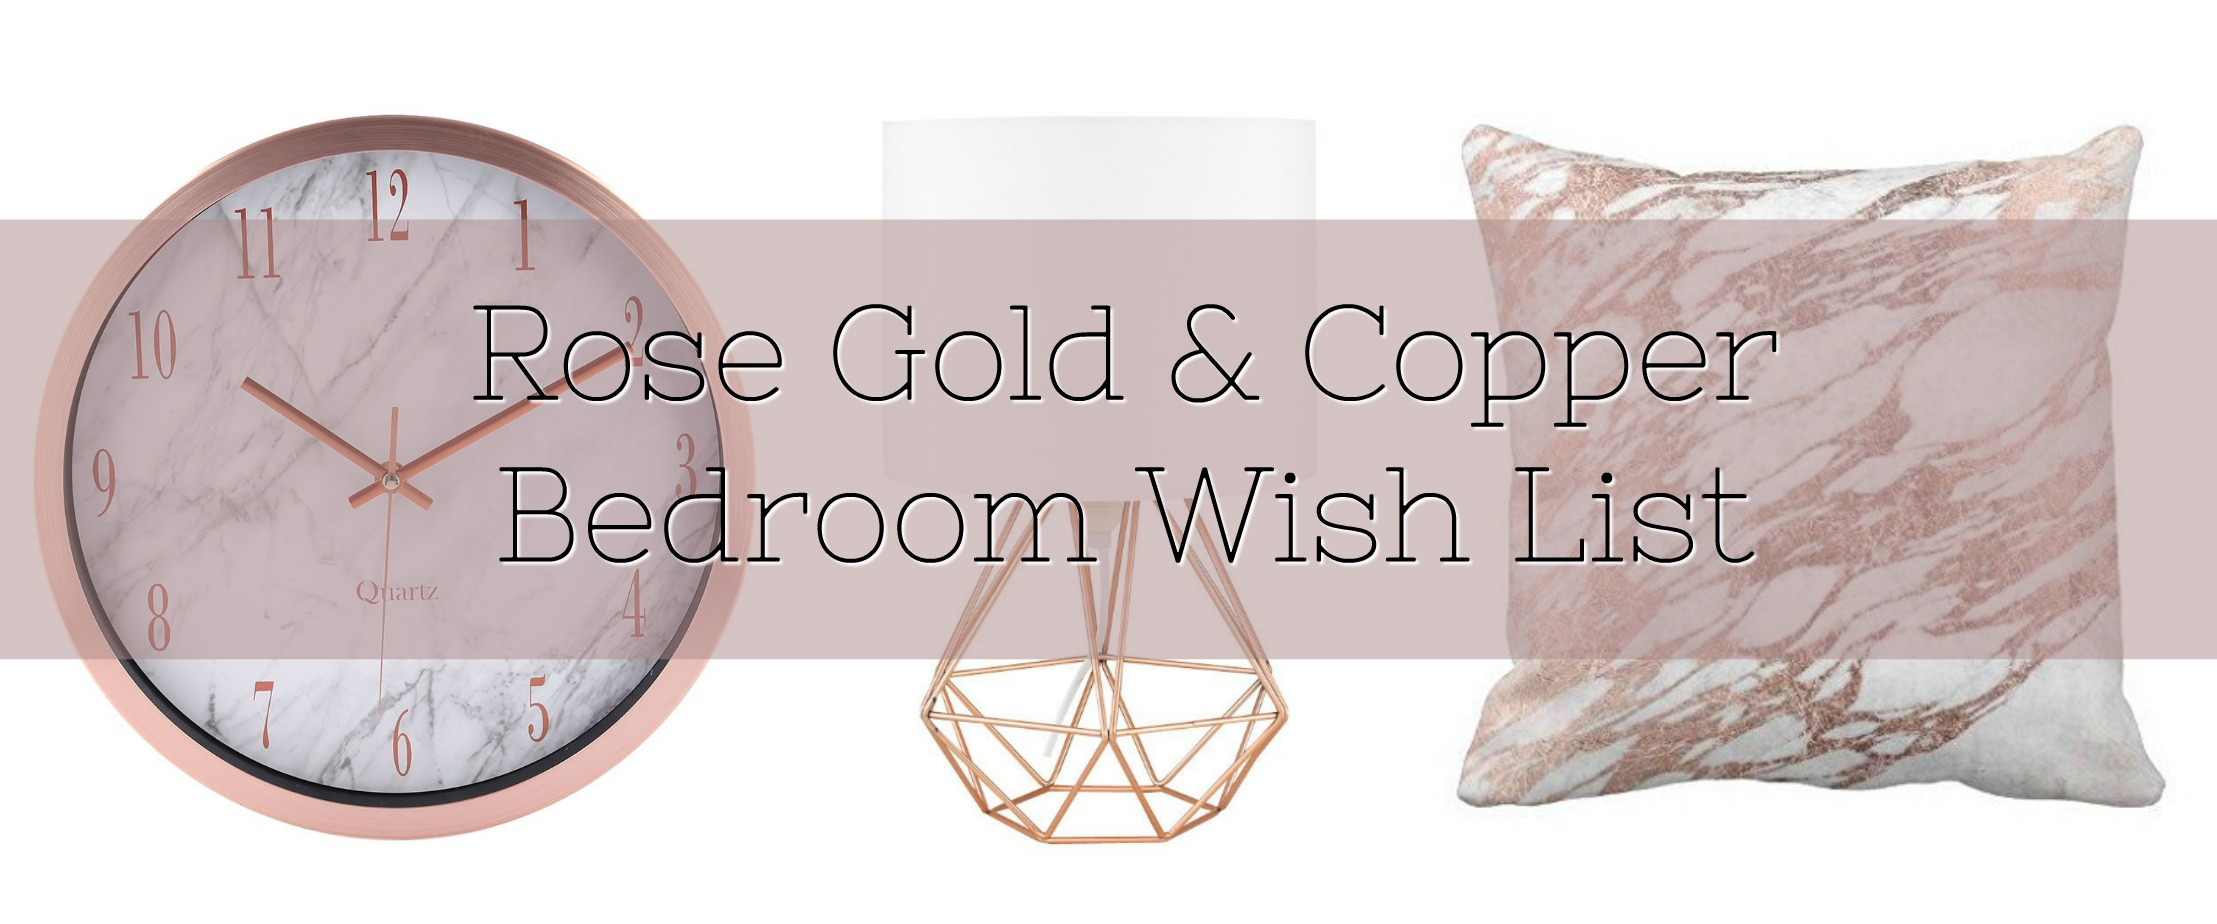 Rose Gold & Copper Bedroom Wish List